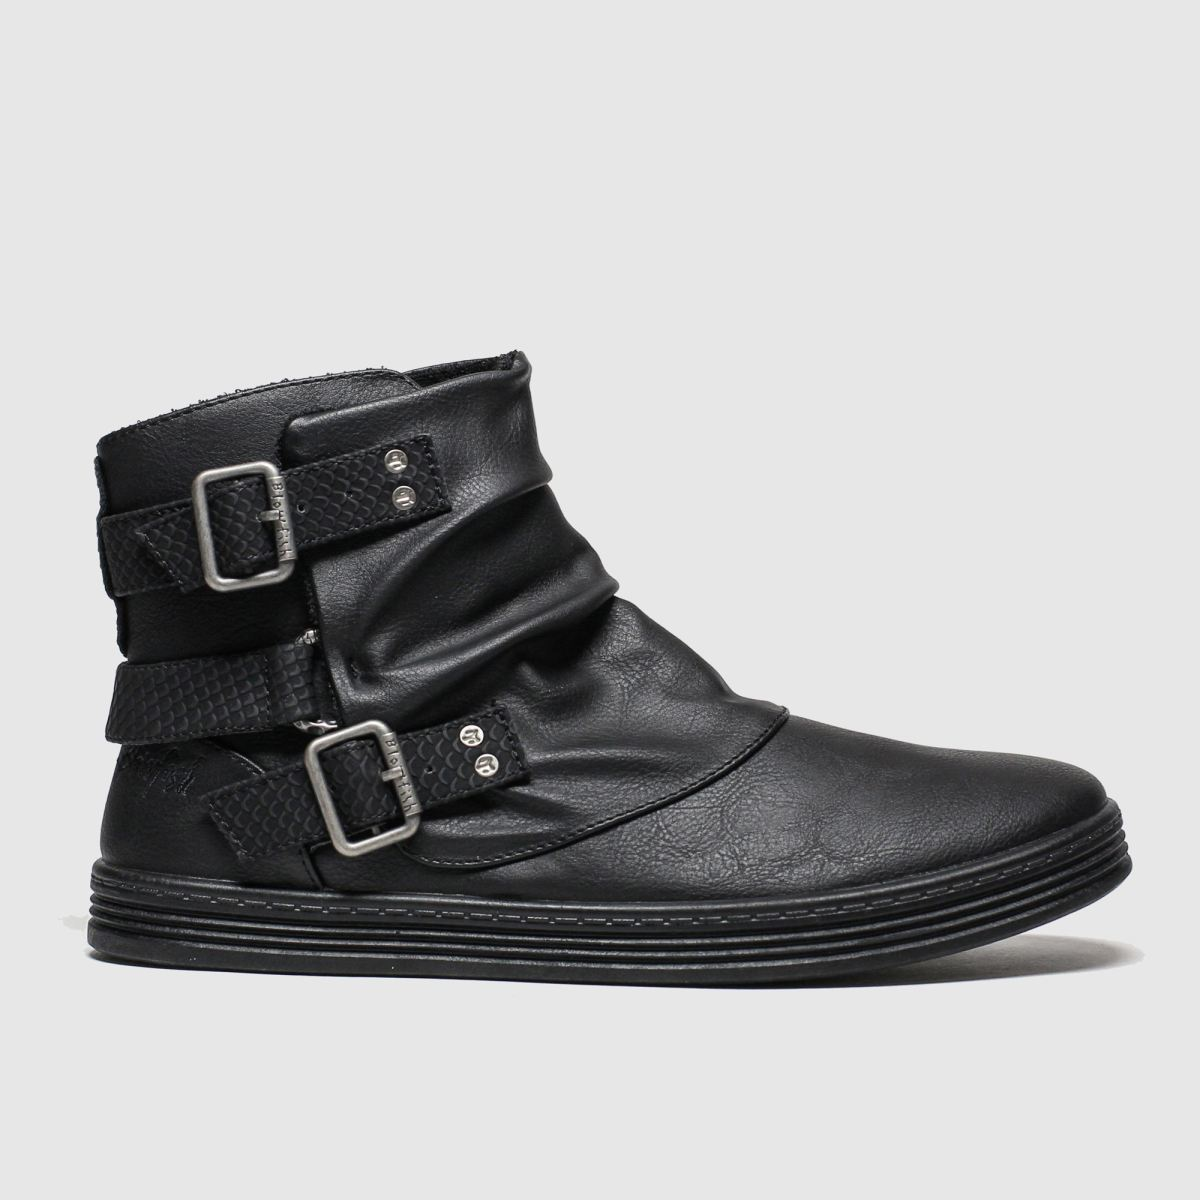 Blowfish Blowfish Black Francesca Boots